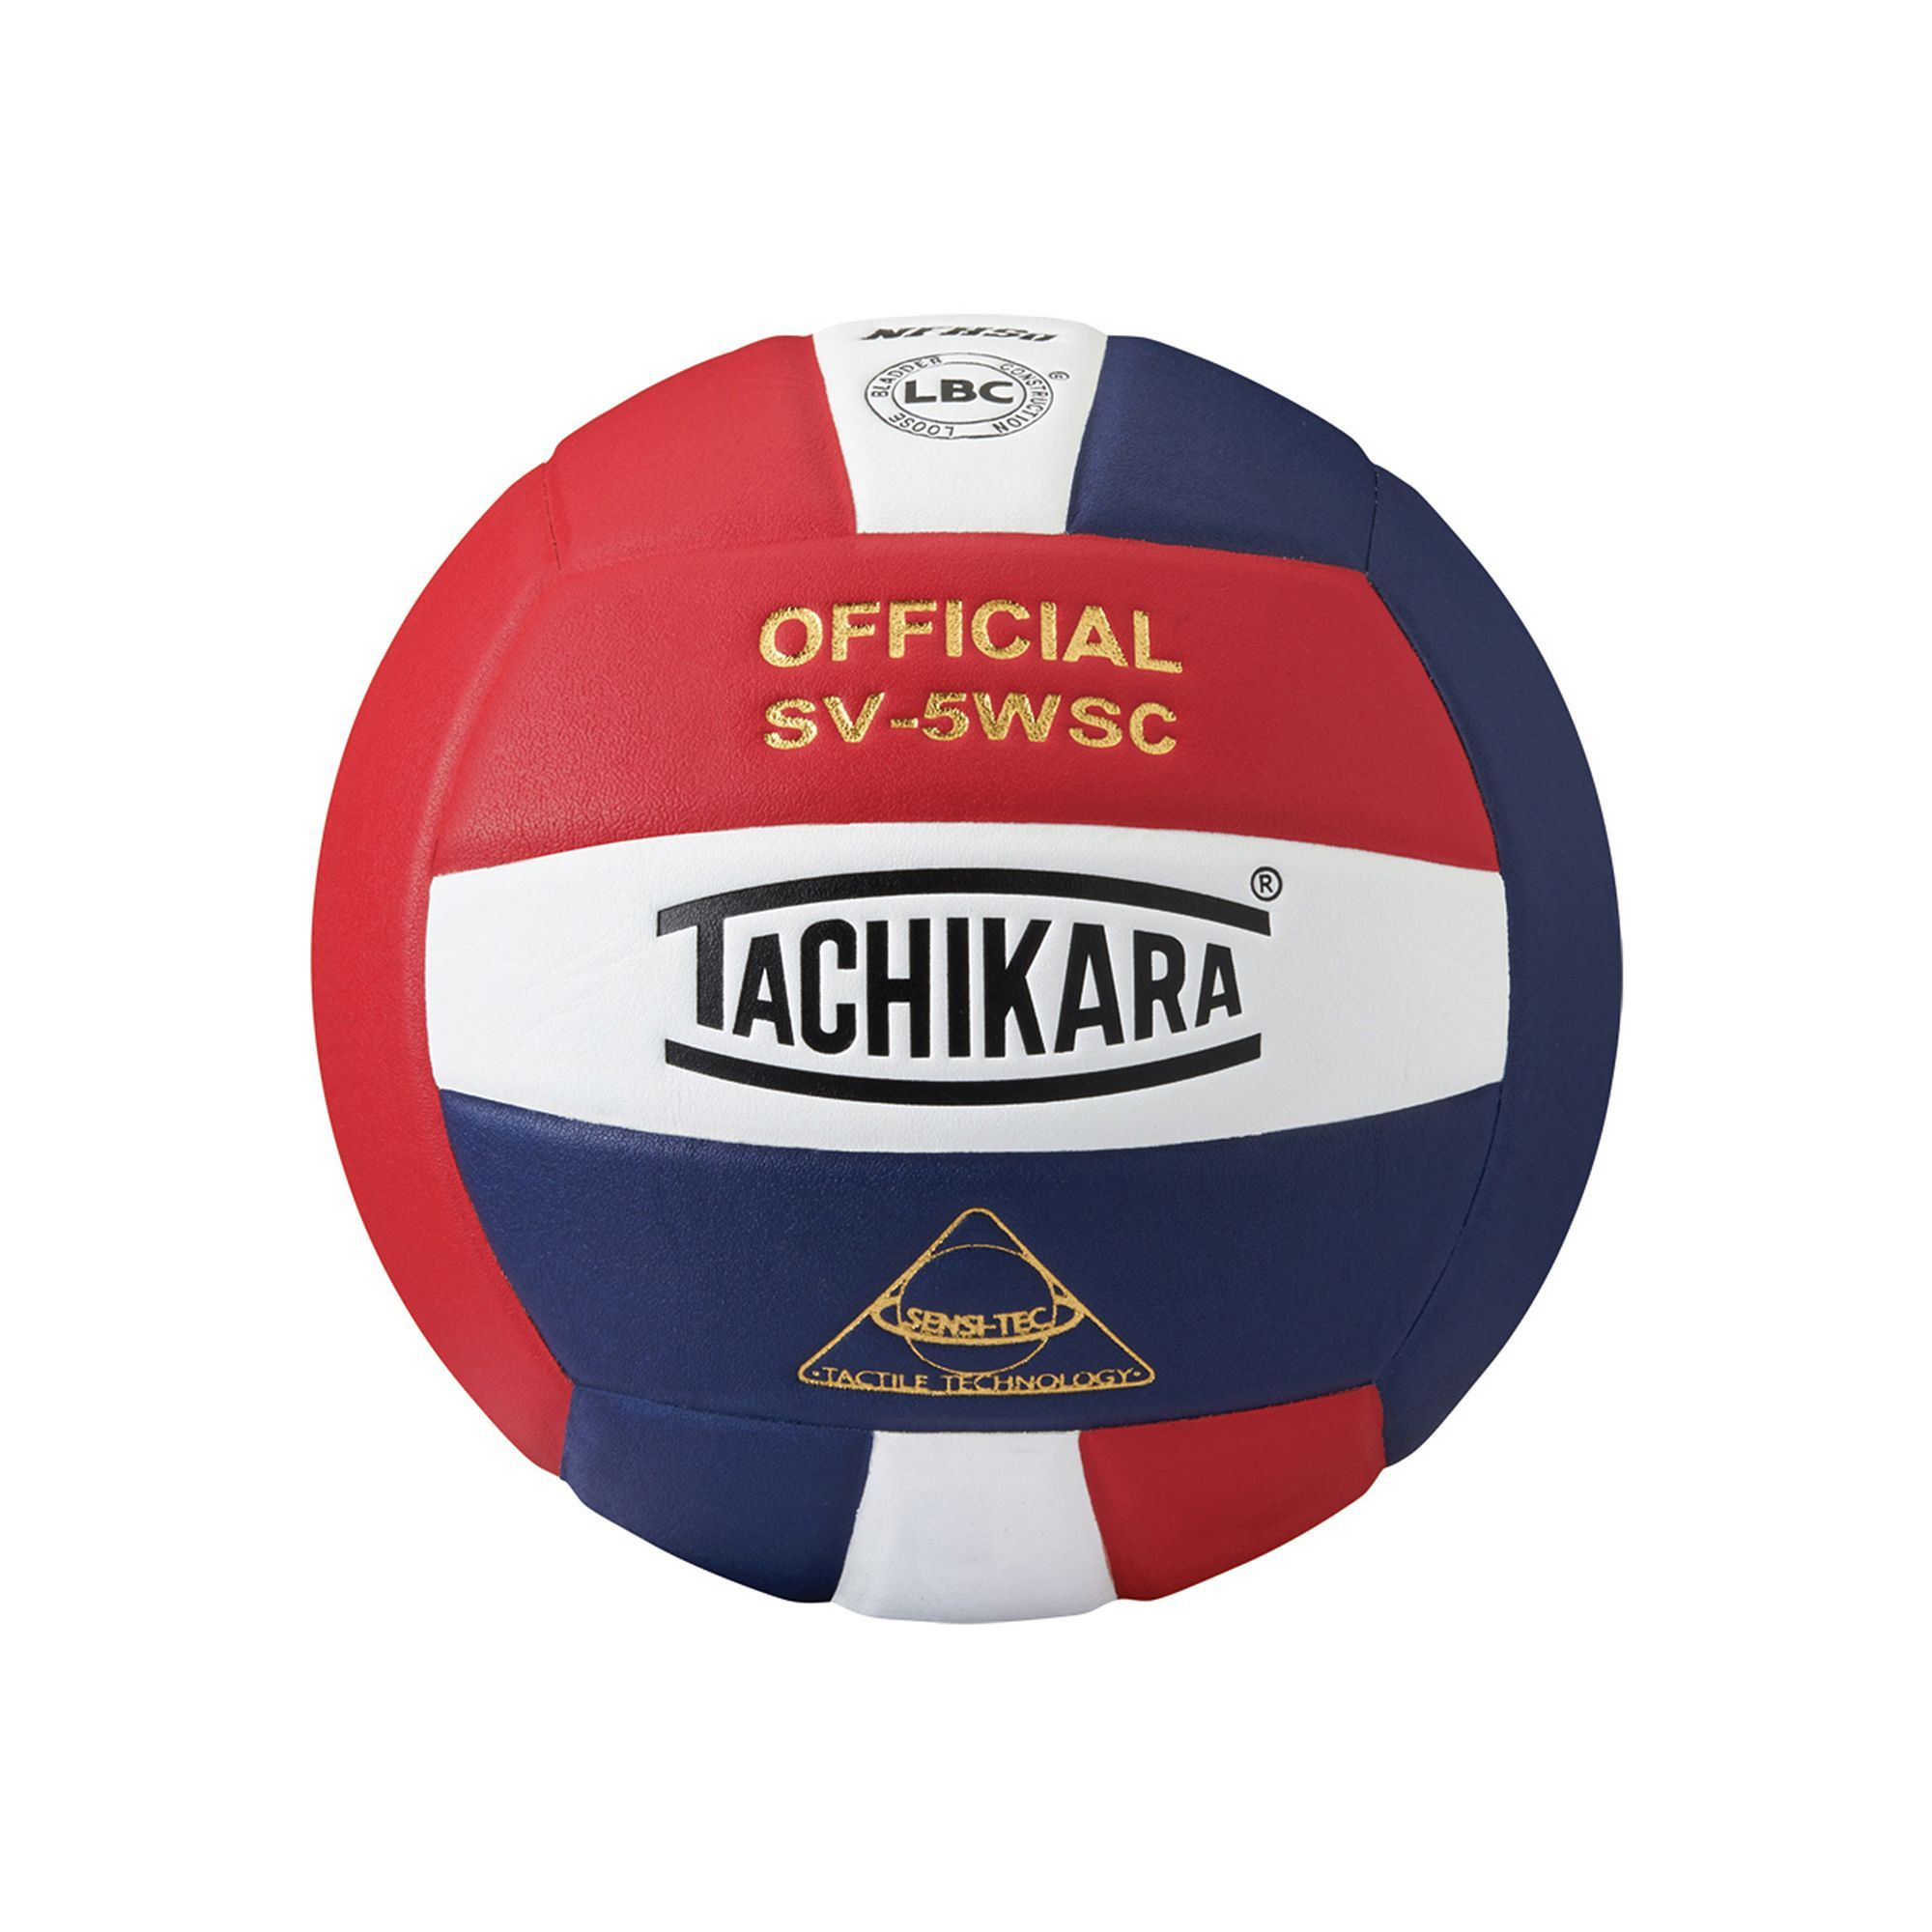 Tachikara Official Sv5wsc Microfiber Composite Leather Volleyball In 2020 Volleyball Volleyballs Tachikara Volleyball